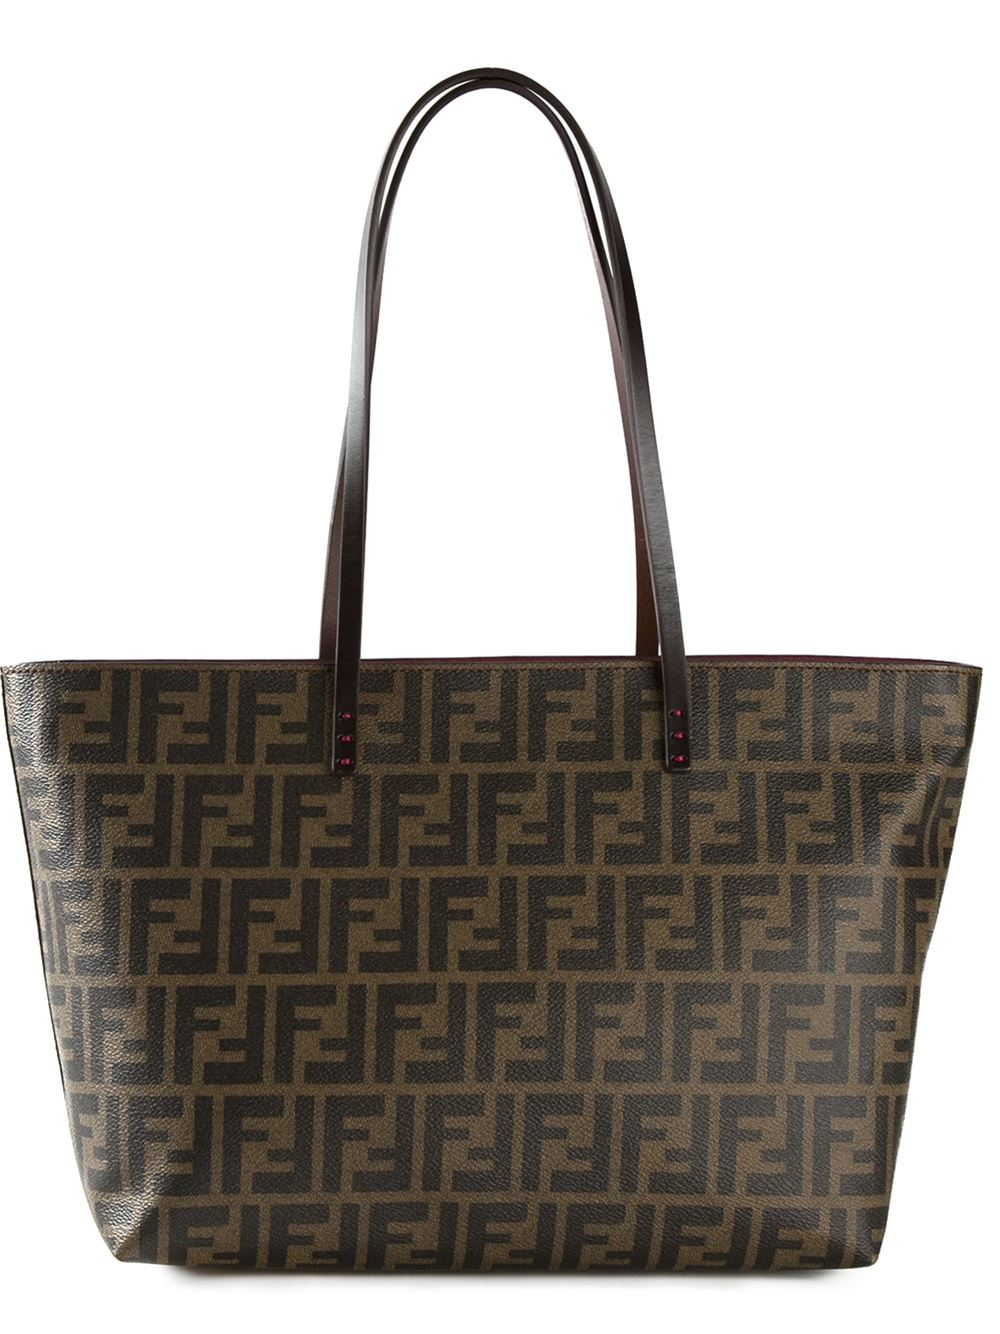 Lyst - Fendi Ff Logo  roll  Tote Bag in Brown b4866ff5411f4